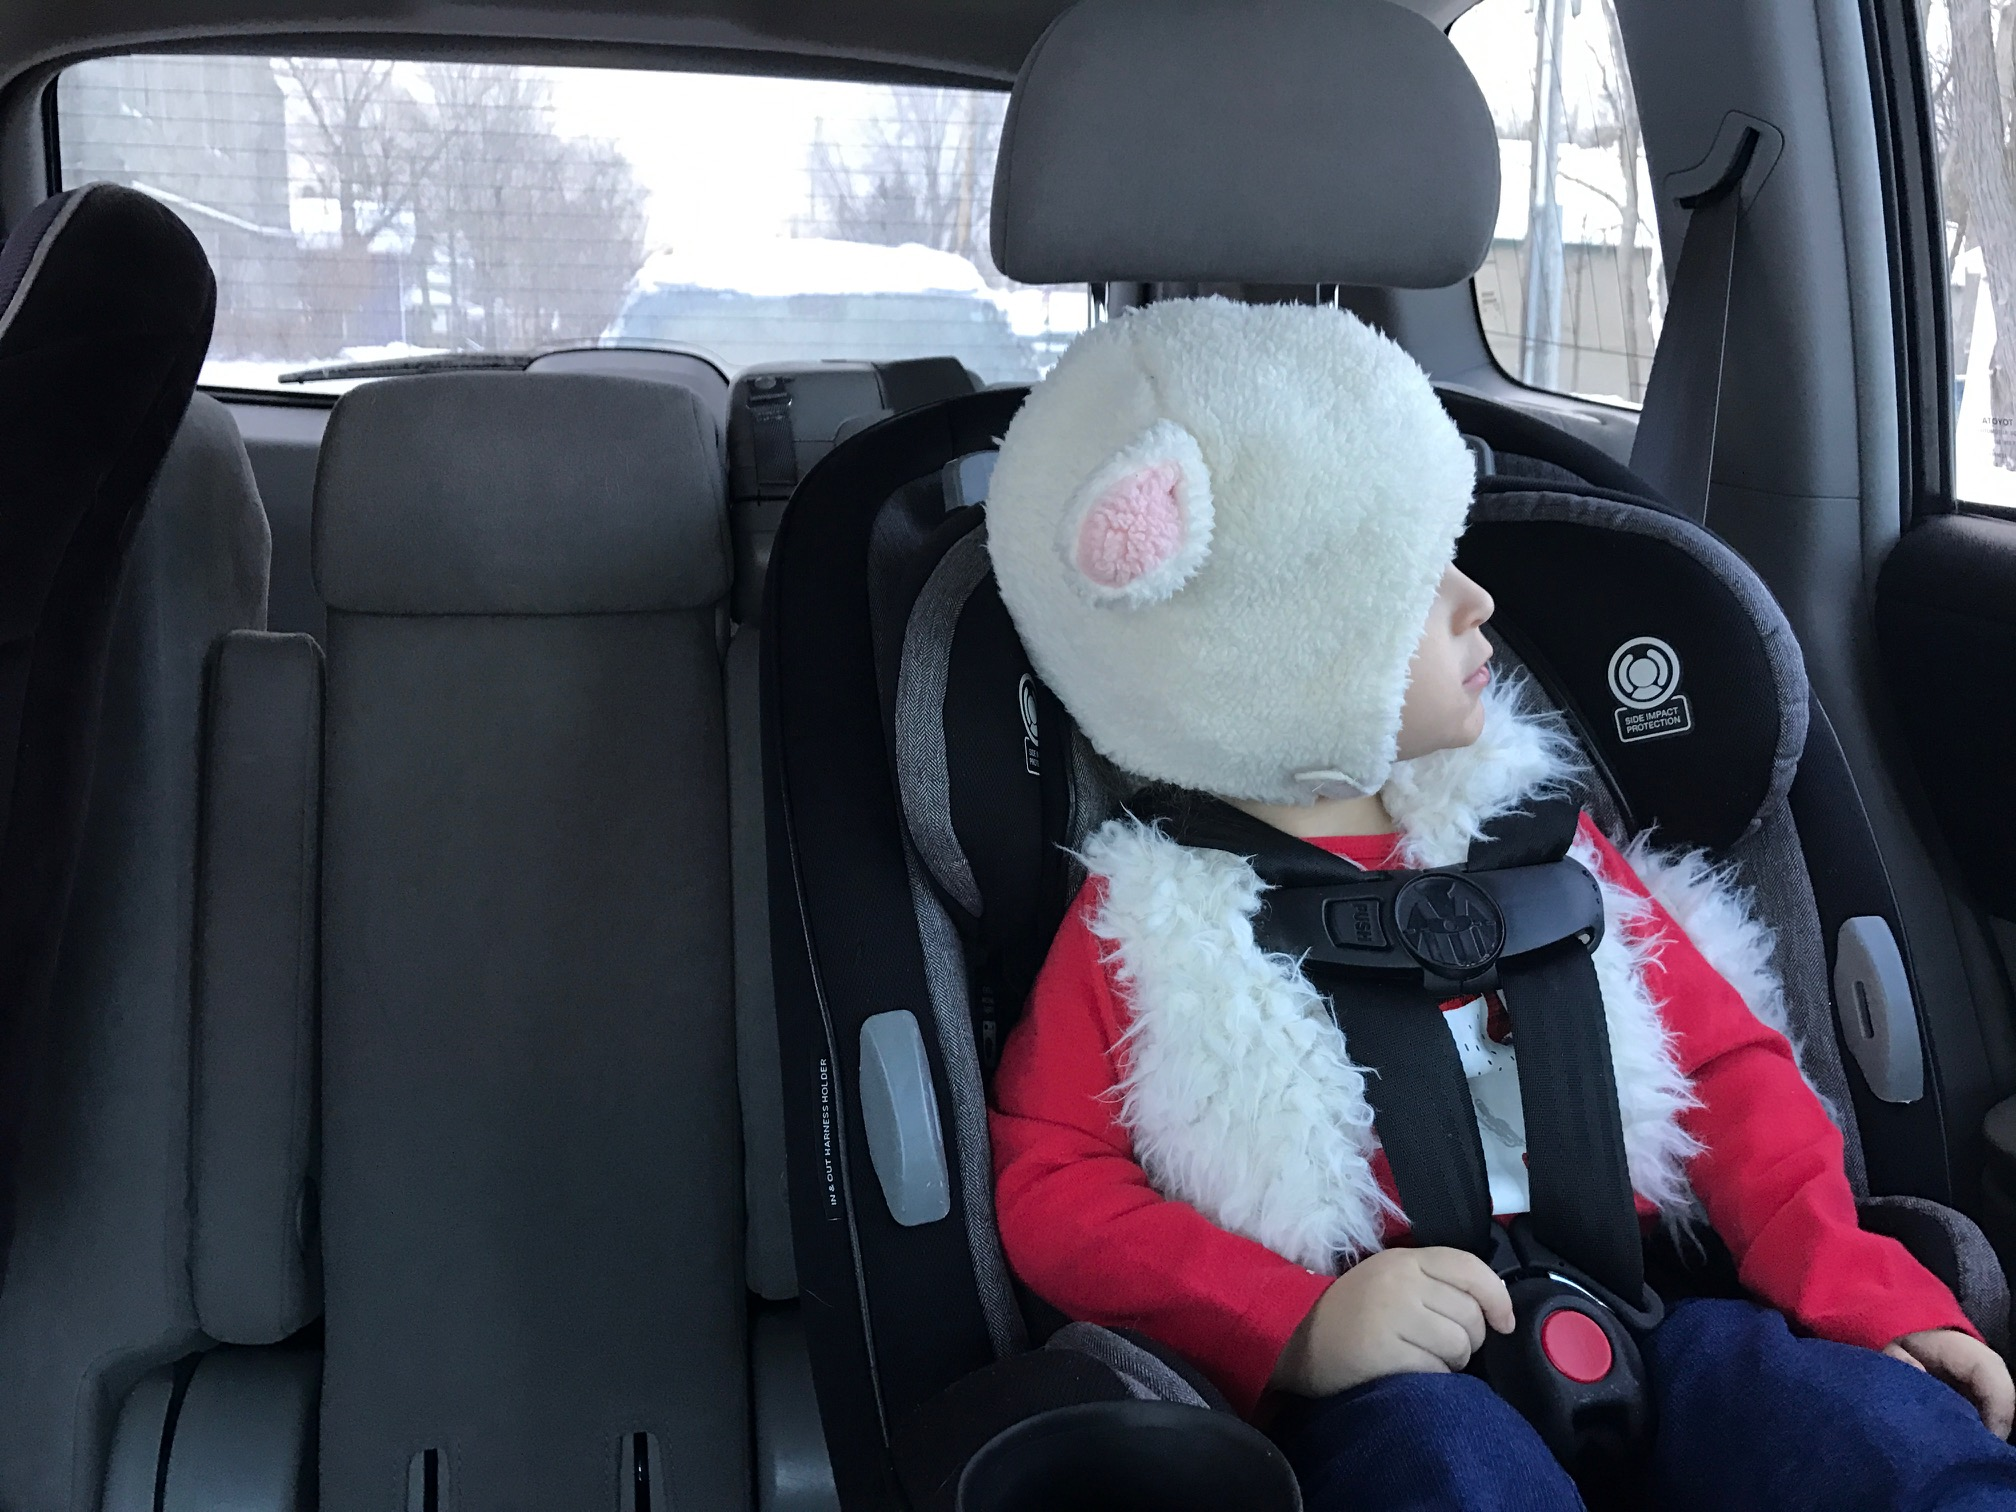 kelly for kids foundation grant covers car seat programs – the